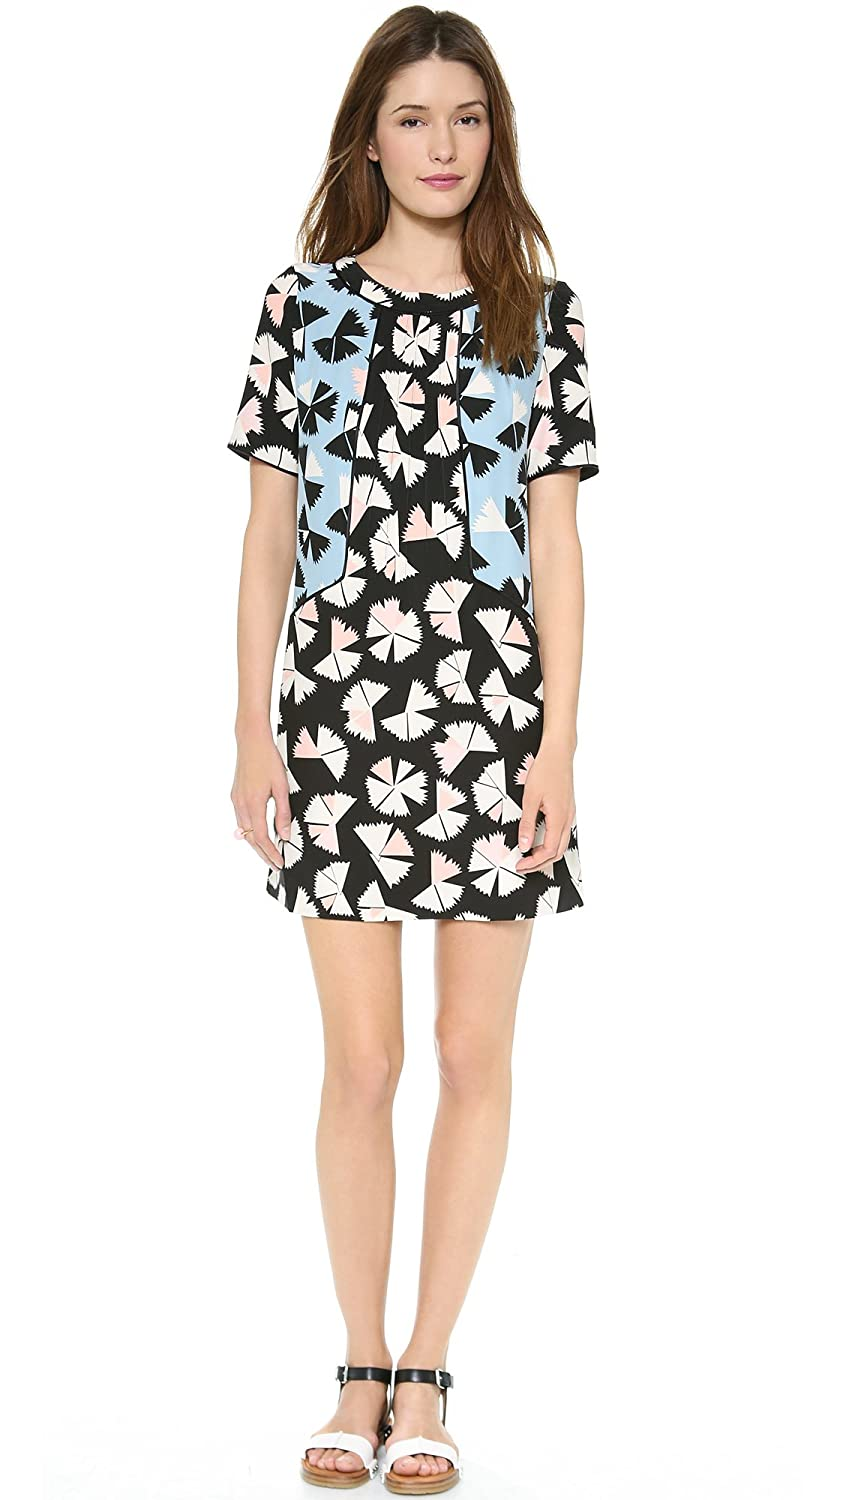 Marc by Marc Jacobs Women's Pinwheel Flower Dress Black Multi 2 M4002229 M4002229_60002-2